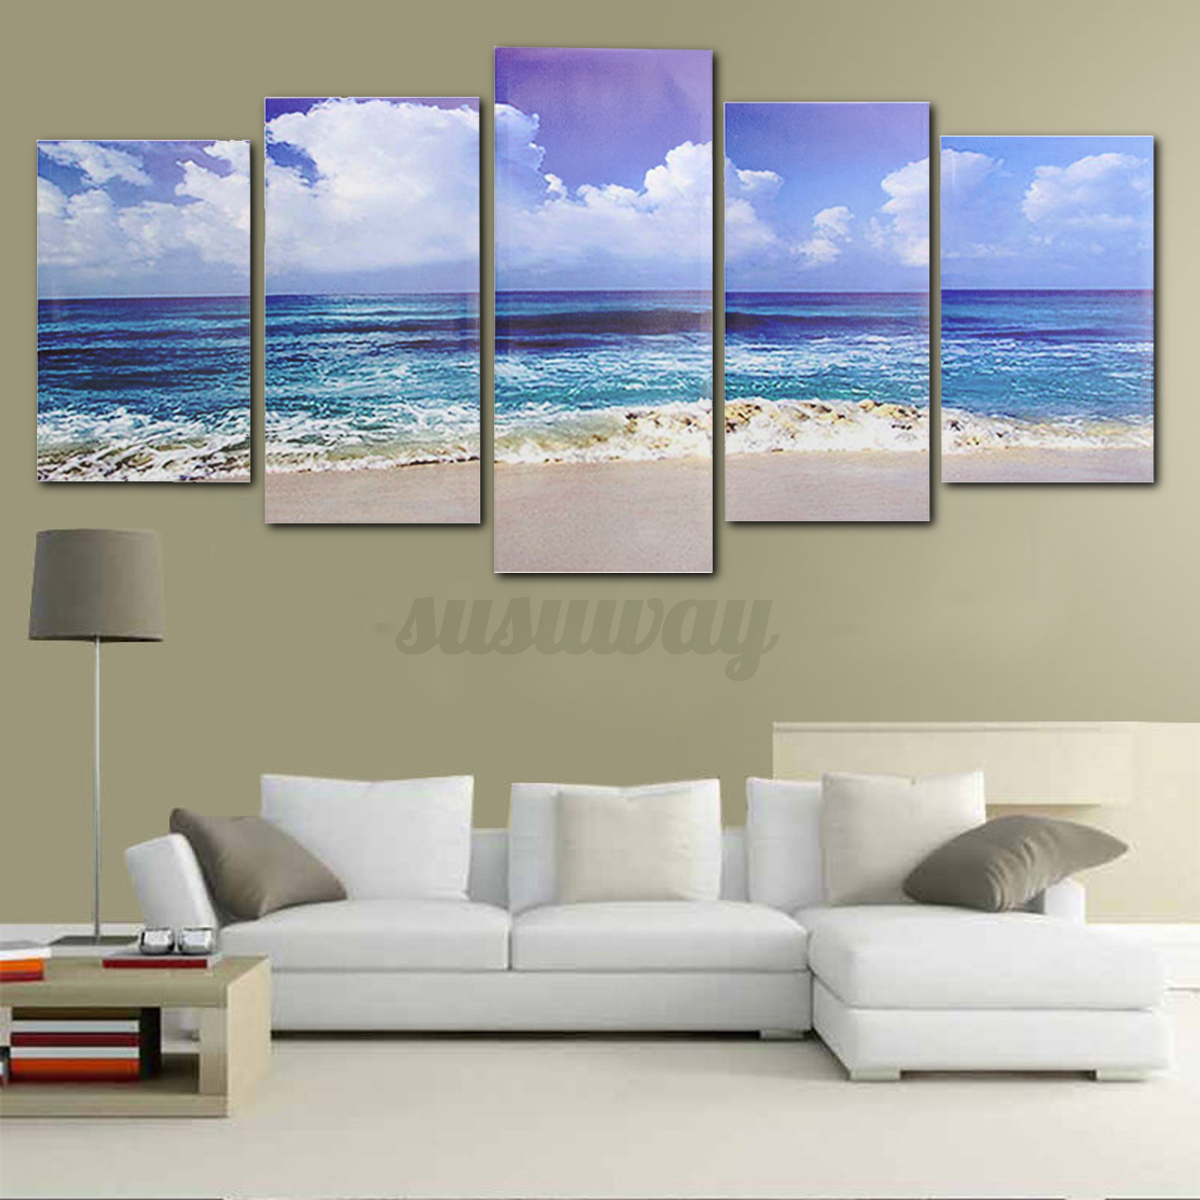 framed encadr moderne abstraite peinture l 39 huile tableau sur toile mural d co ebay. Black Bedroom Furniture Sets. Home Design Ideas